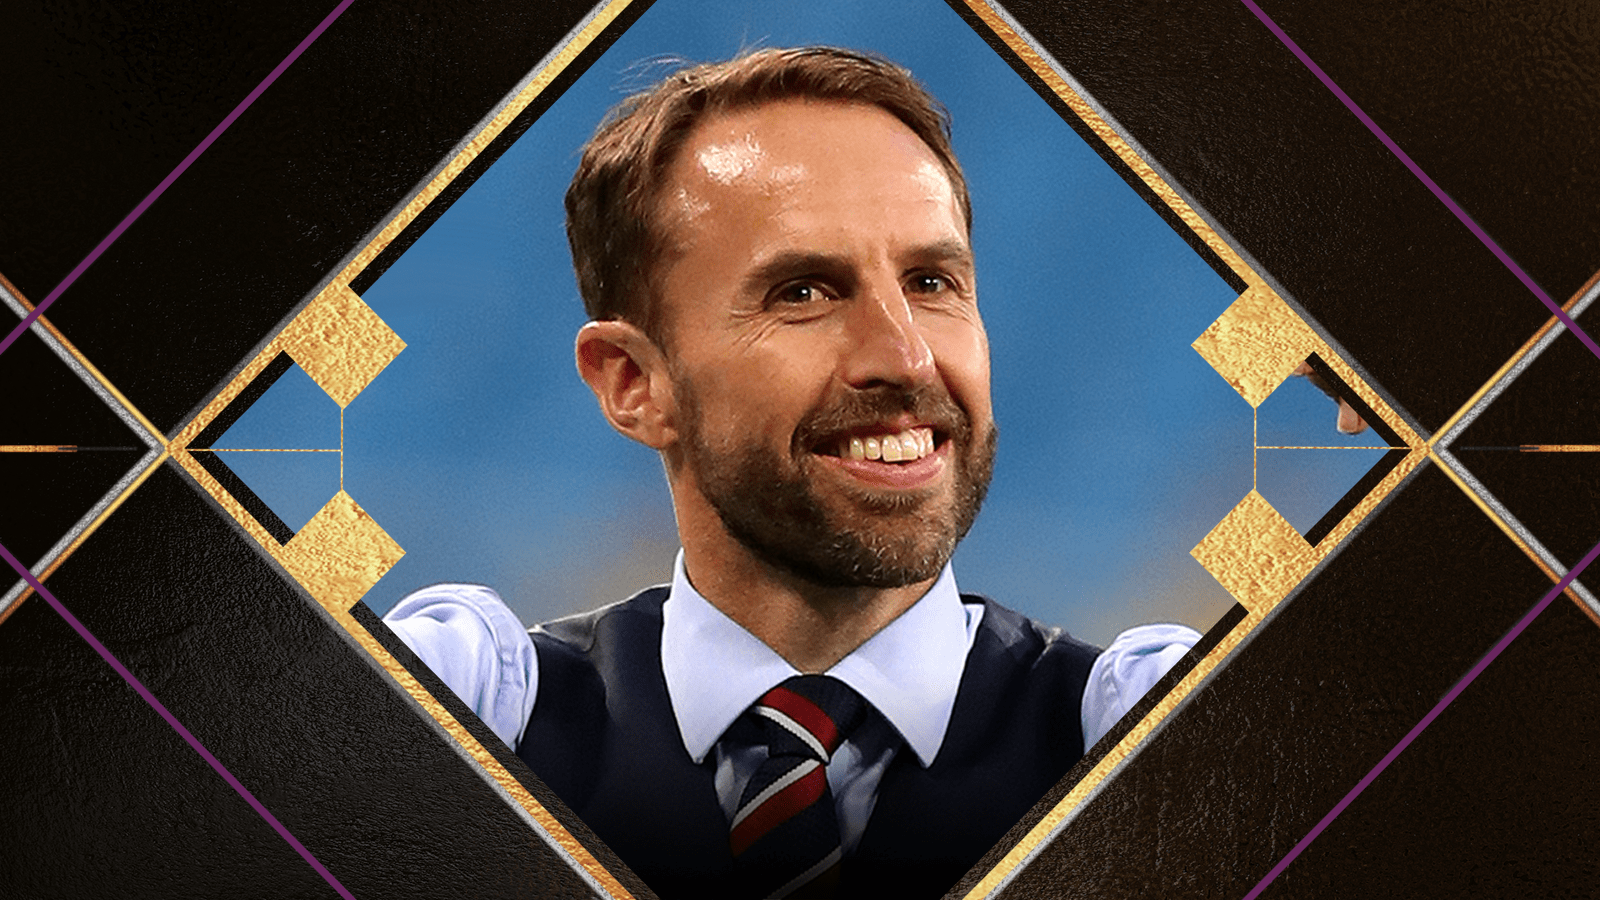 Sports Personality of the Year: Gareth Southgate named Coach of the Year